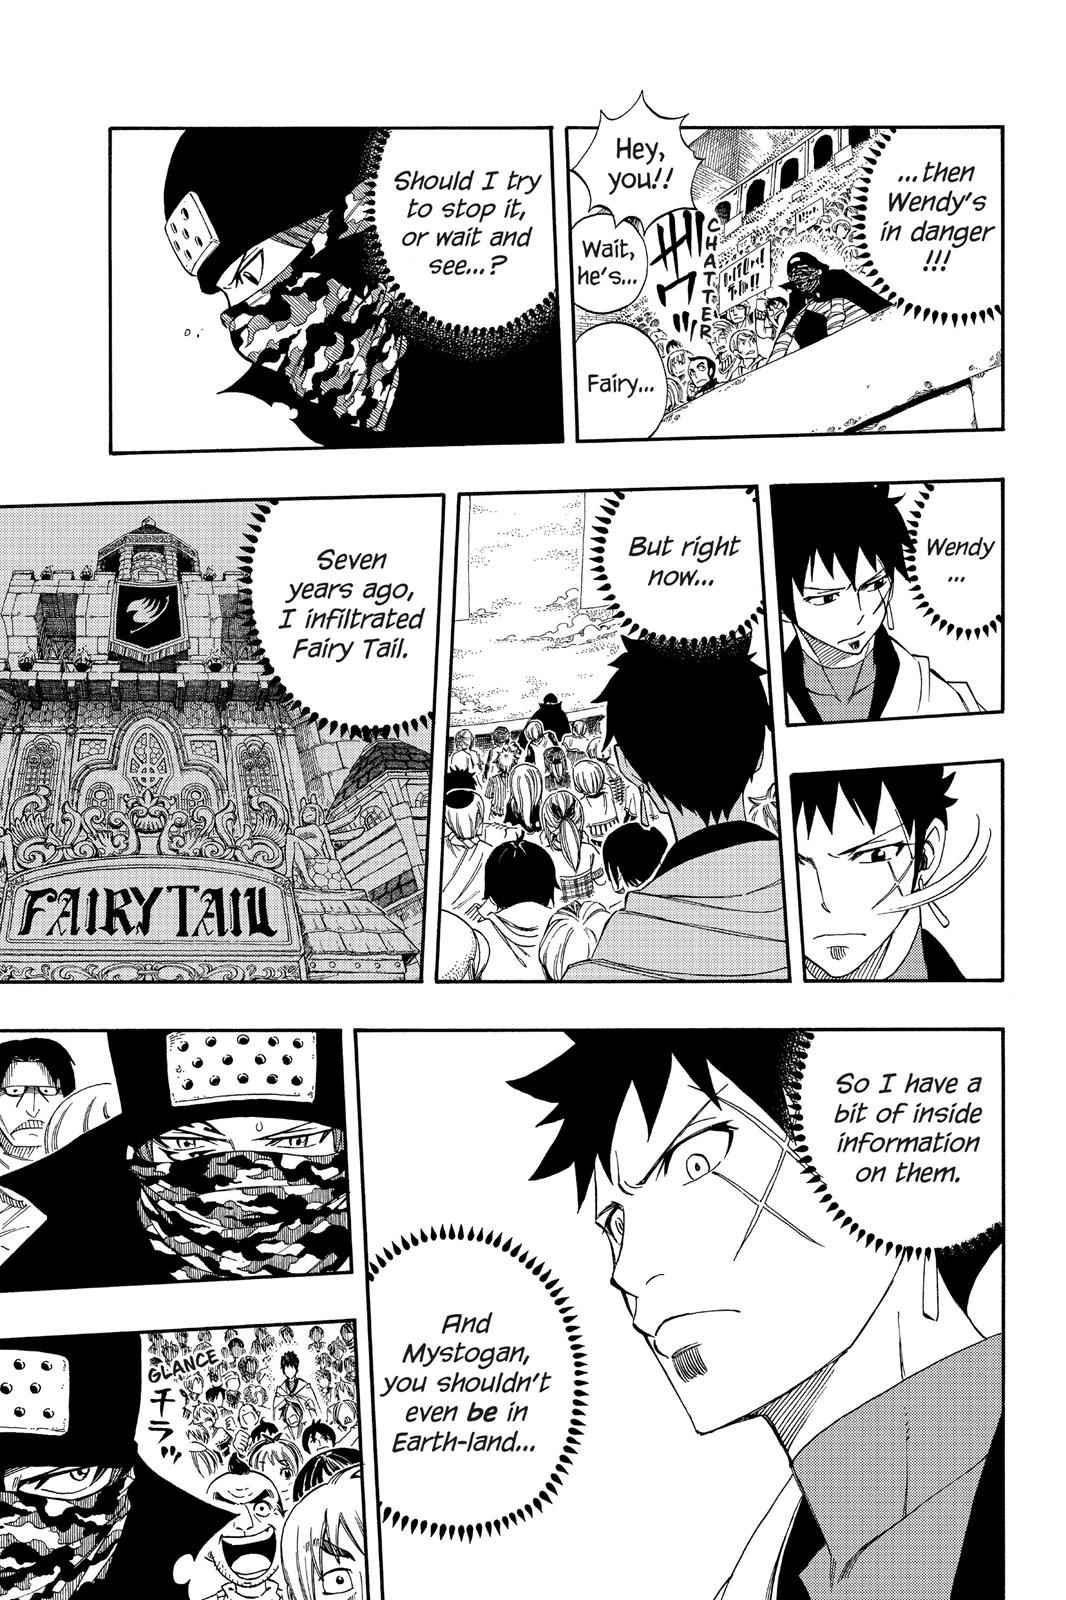 Fairy Tail Chapter 289 Page 3